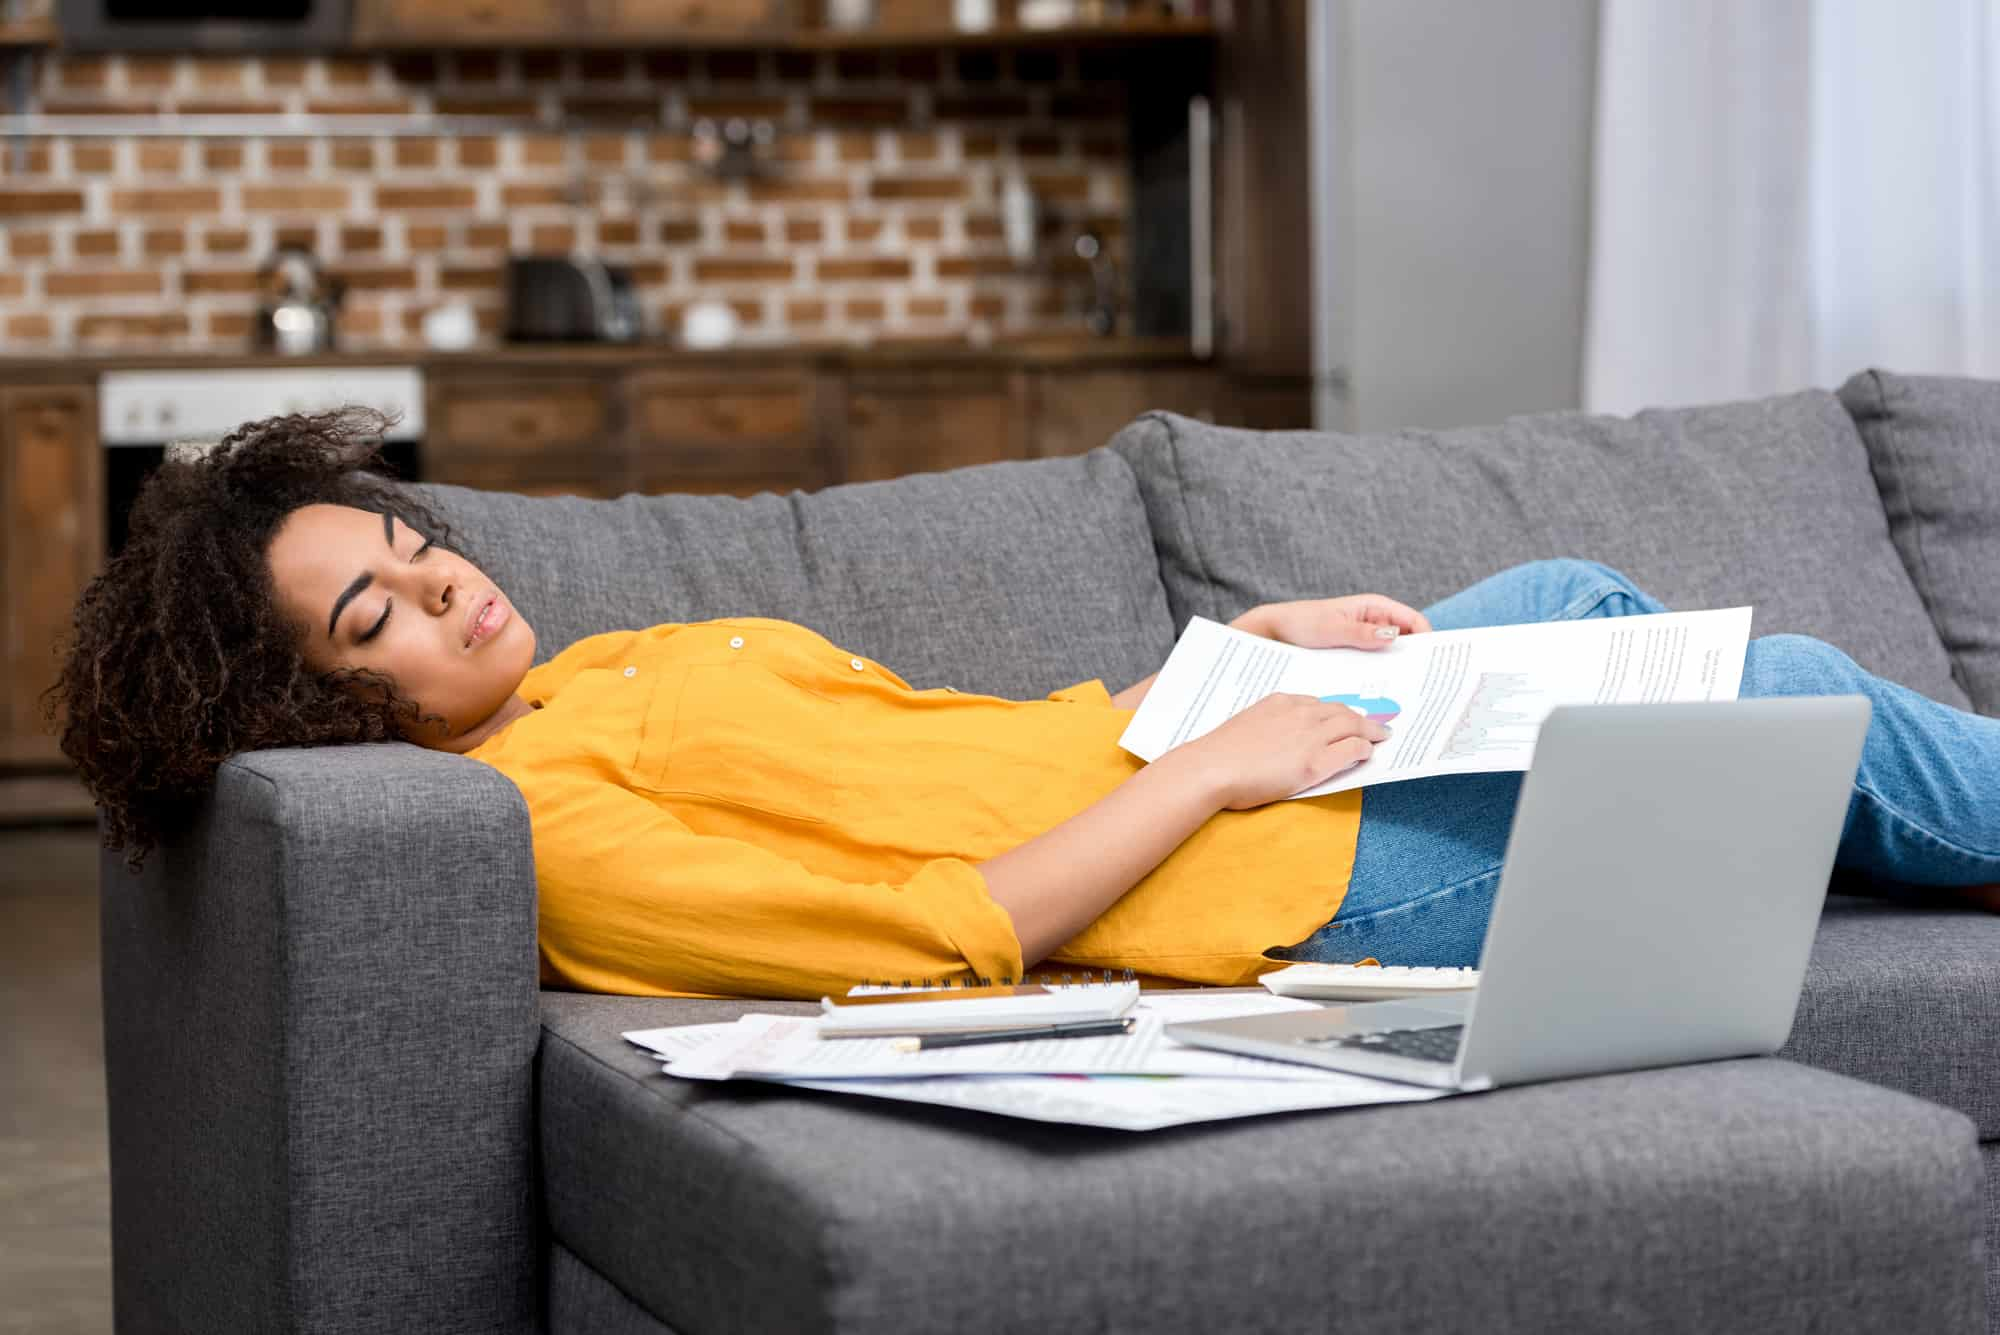 image of person on couch overwhelmed and unmotivated